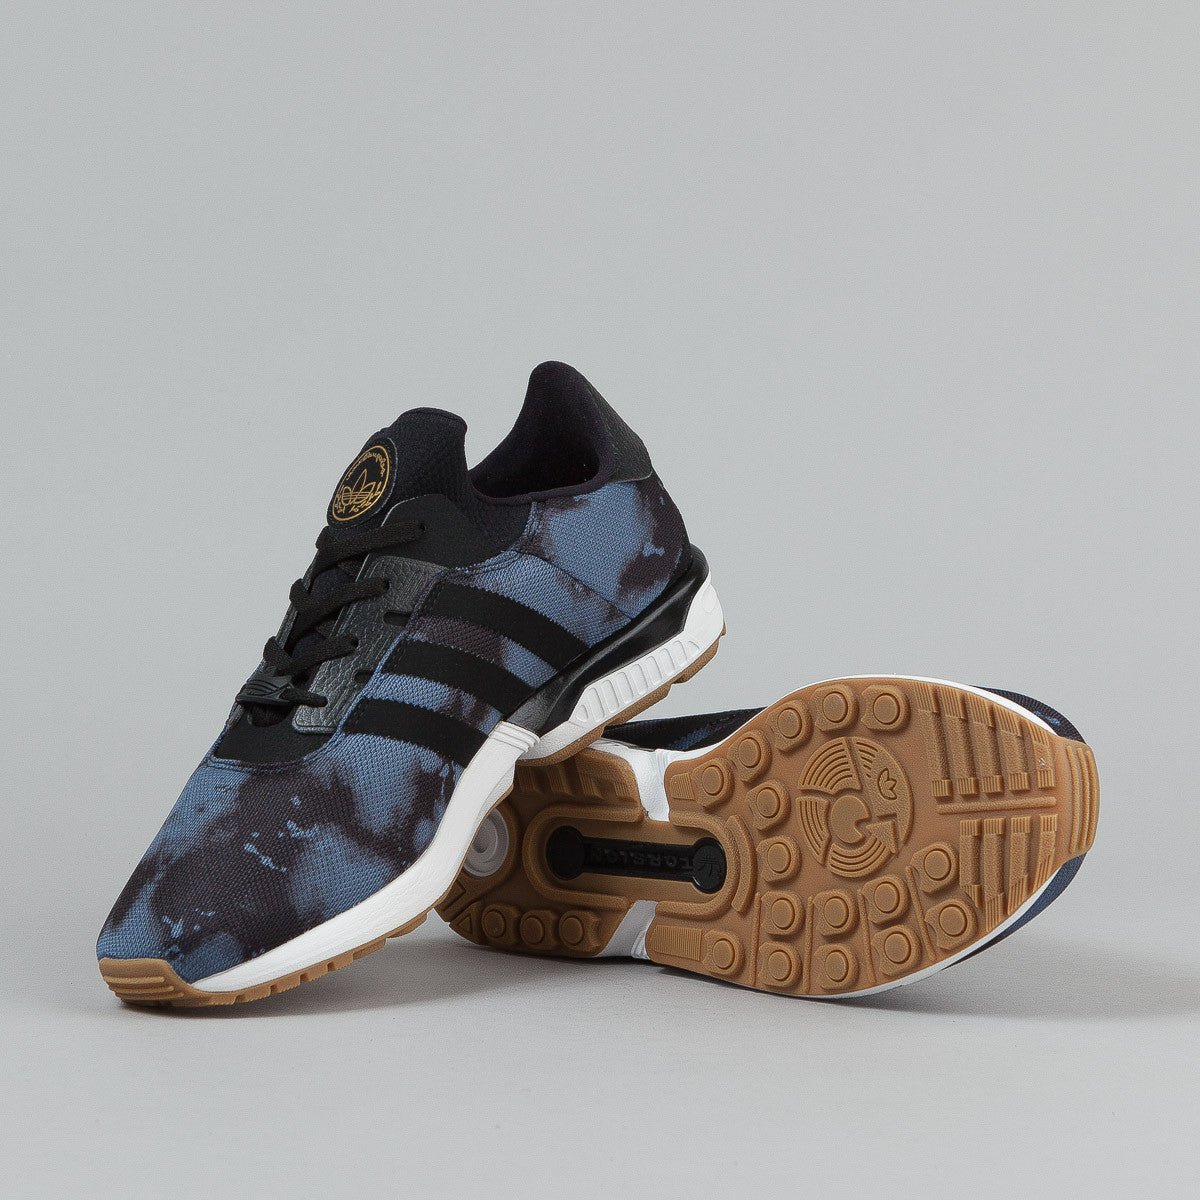 Adidas ZX Gonz Shoes - Fade Ink / Core Black / Gum